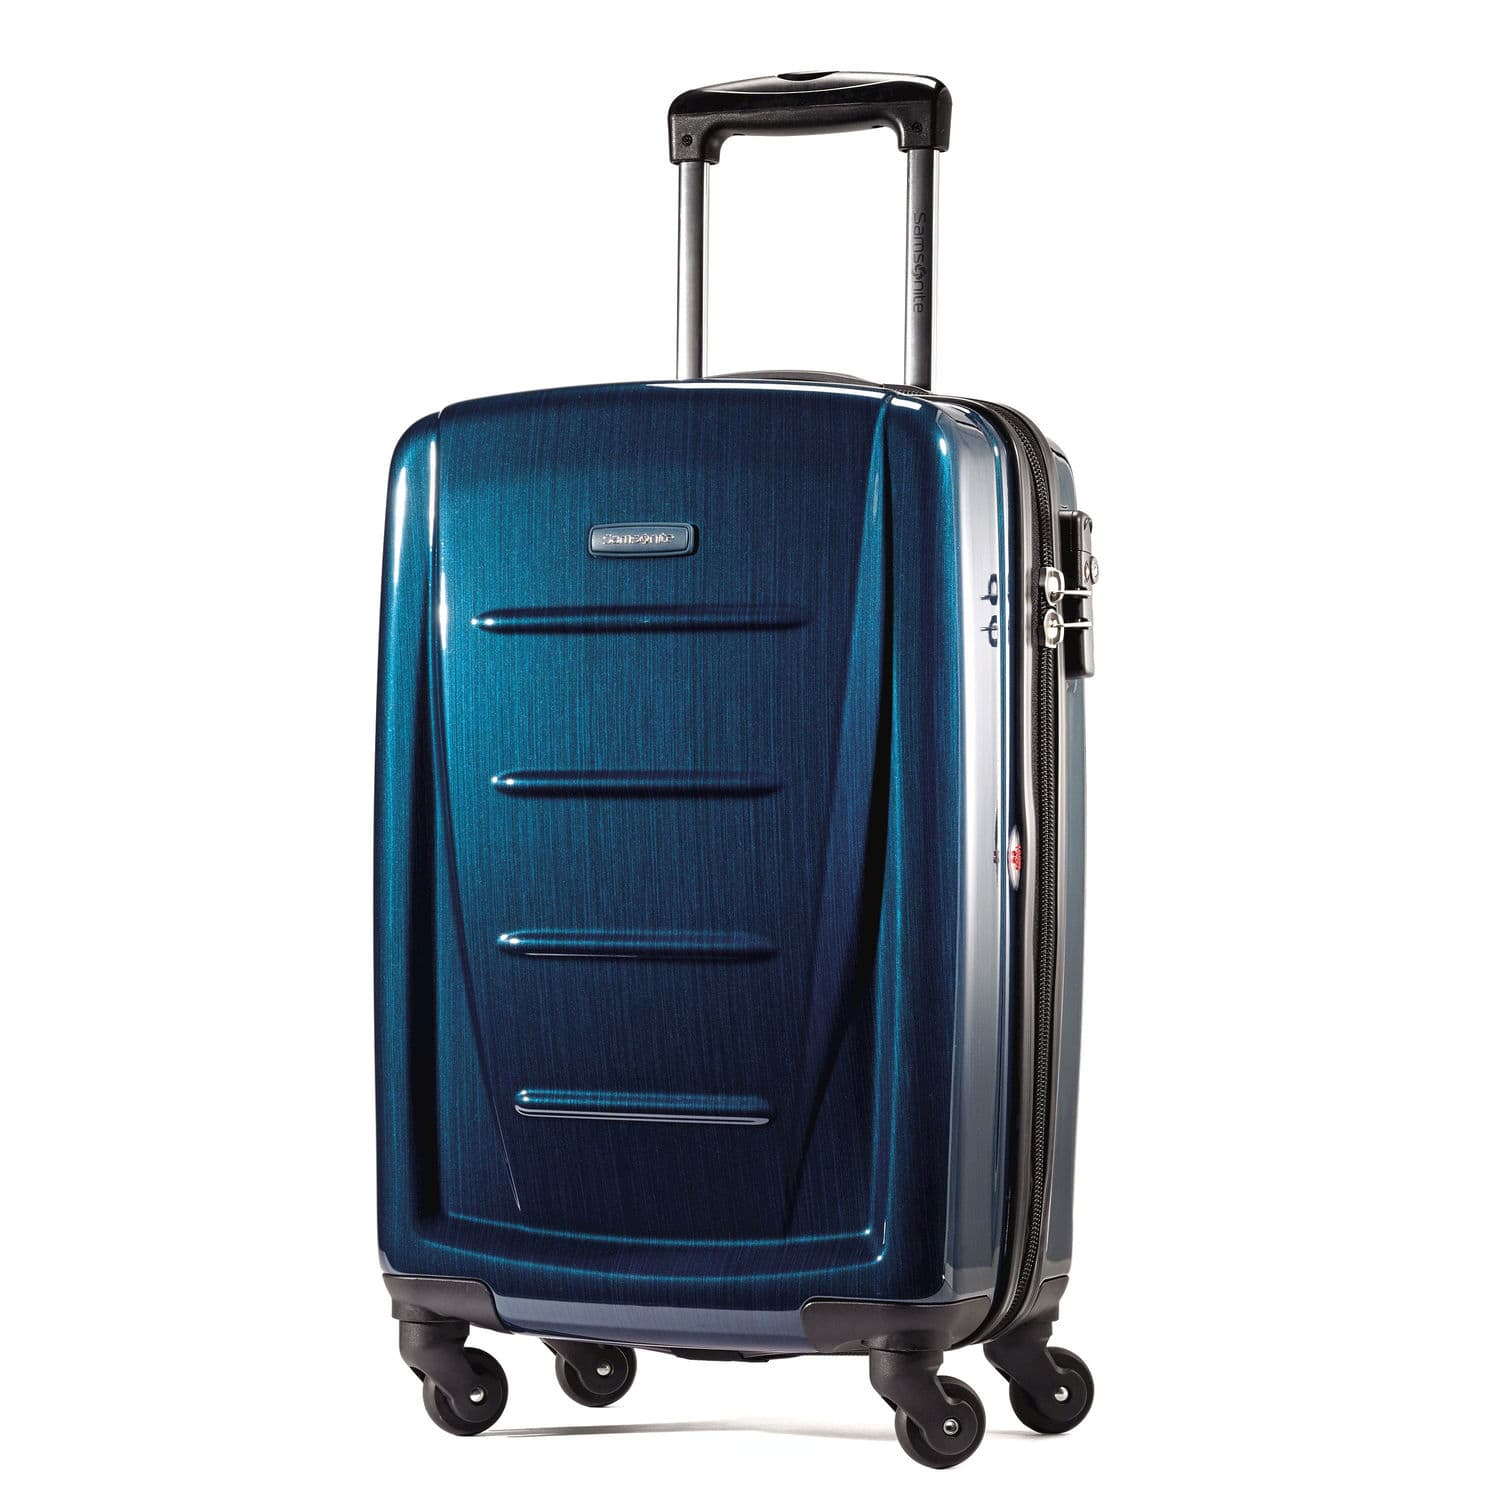 Samsonite Backpacks starting at $39.99, Spinners starting at $64.99, and Luggage sets starting at $99.99